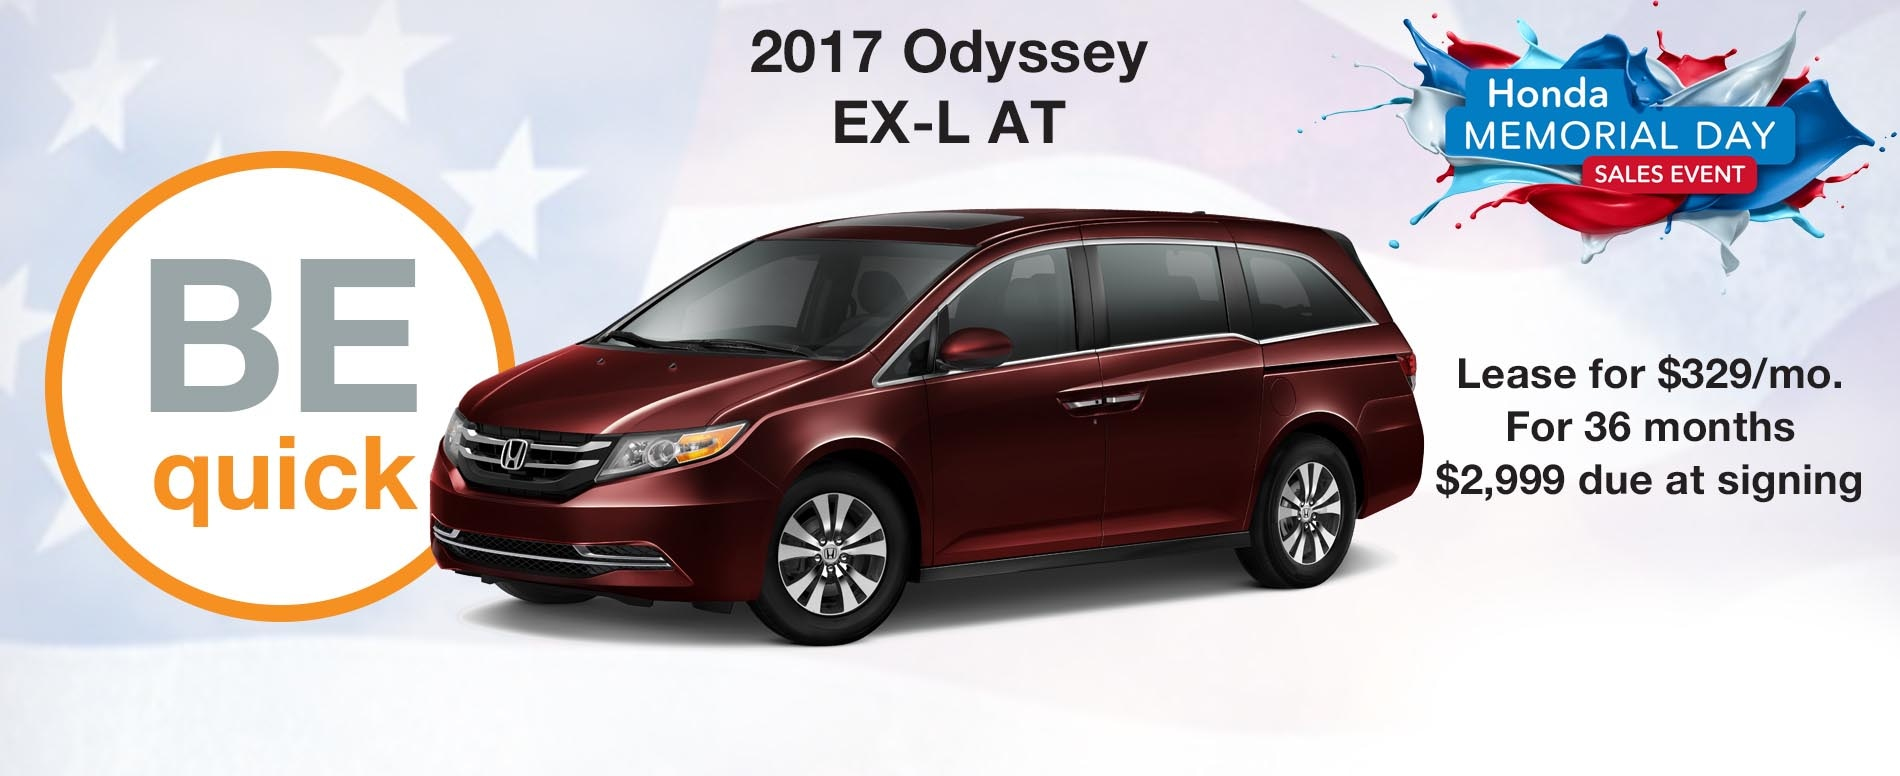 BE quick. Lease a Honda Odyssey EX-L for $329 per month with $2,999 due at signing.